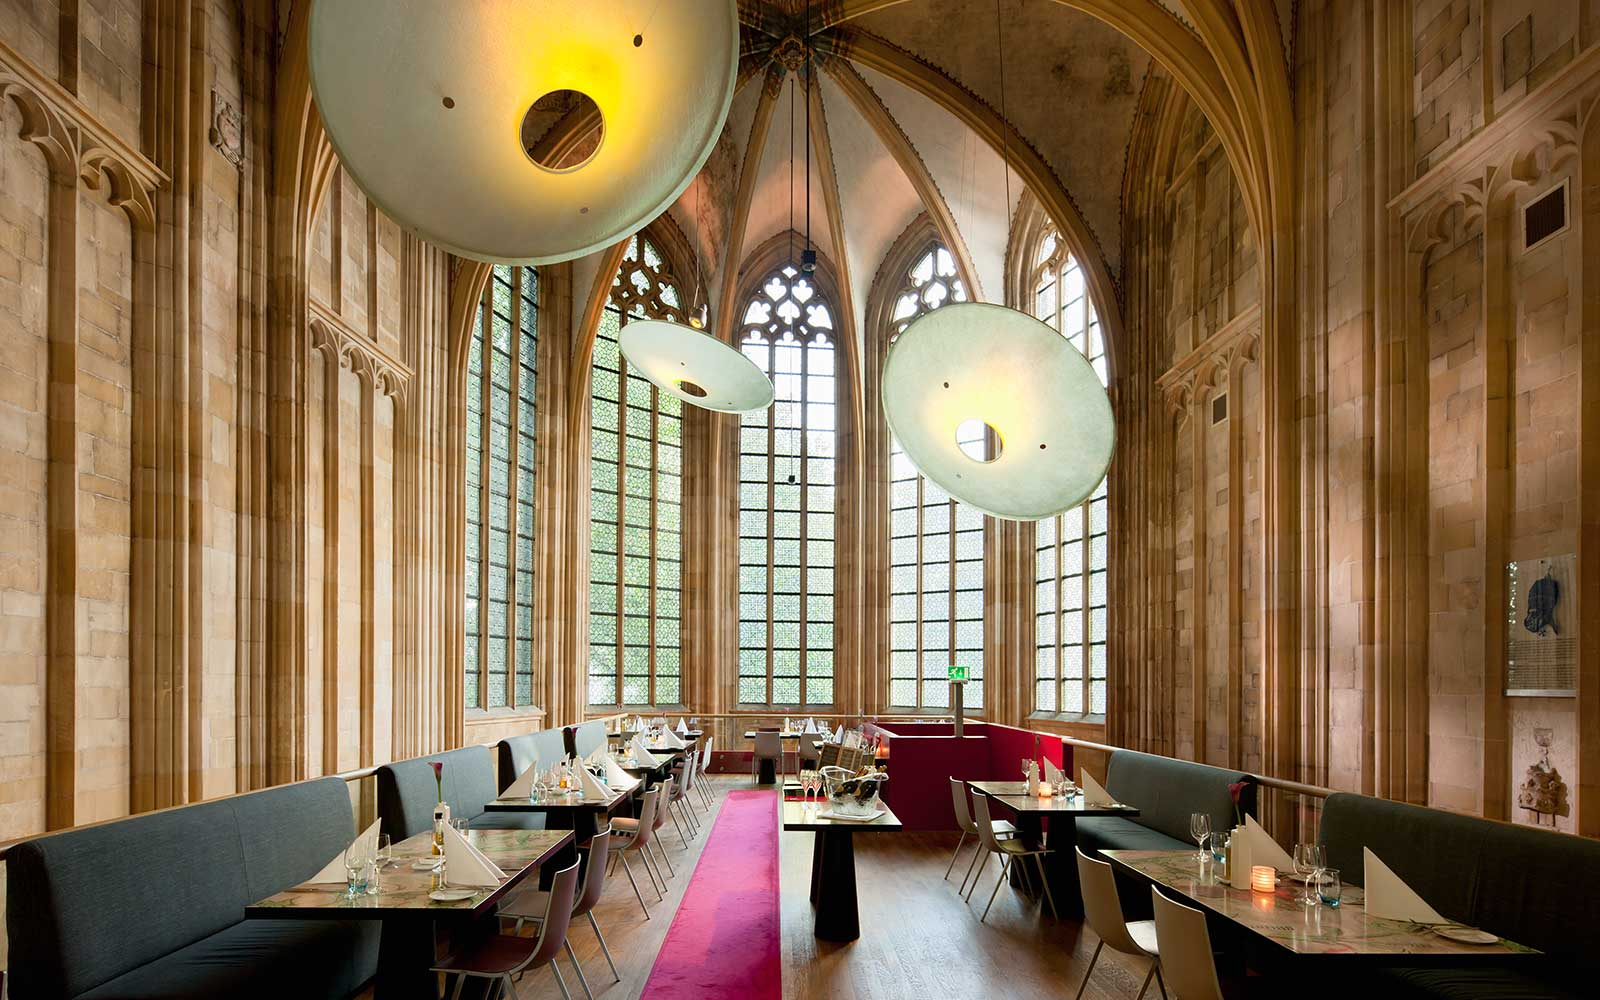 13 Grand Churches, Reincarnated: Kruisherenhotel Maastricht in the Netherlands